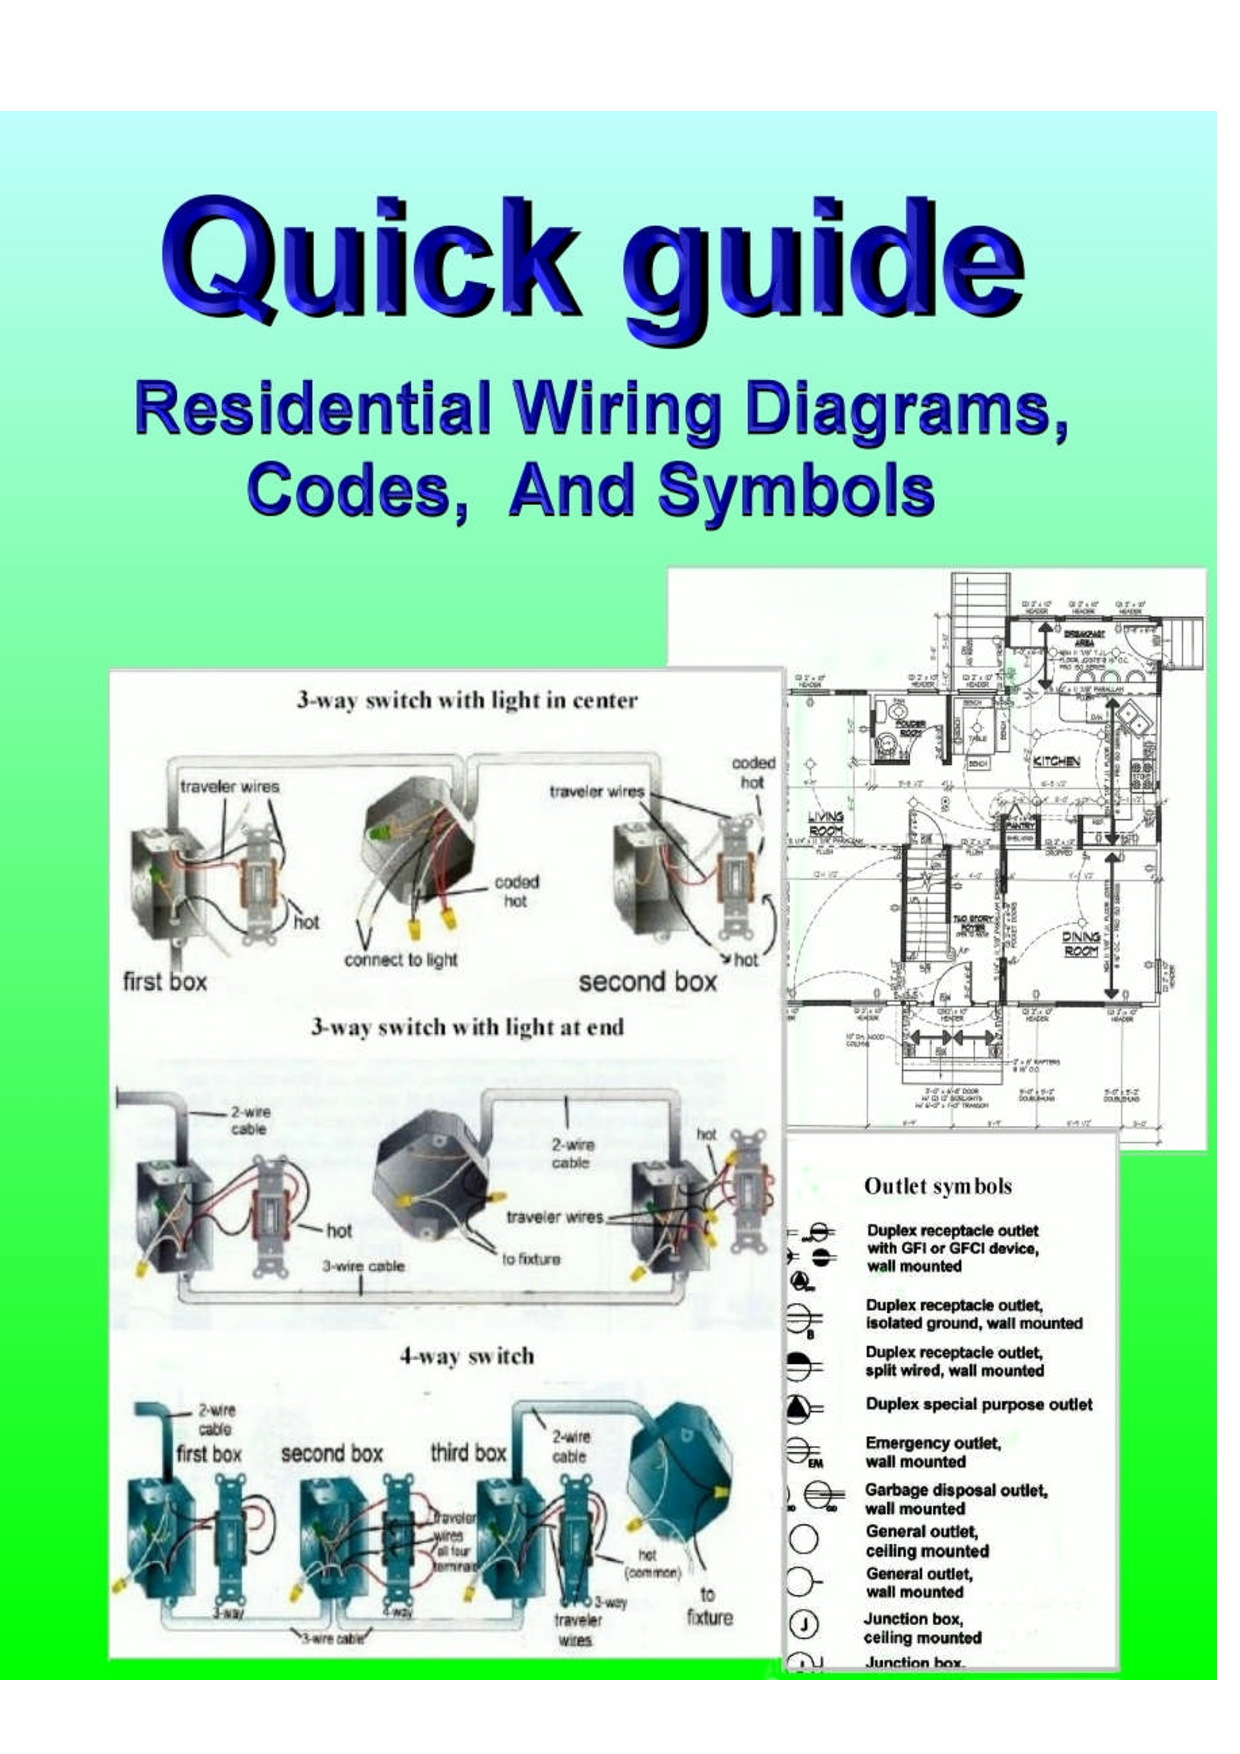 modern residential wiring 2016 pdf blog wiring diagram home wiring guide wiring diagram name modern residential [ 1240 x 1754 Pixel ]